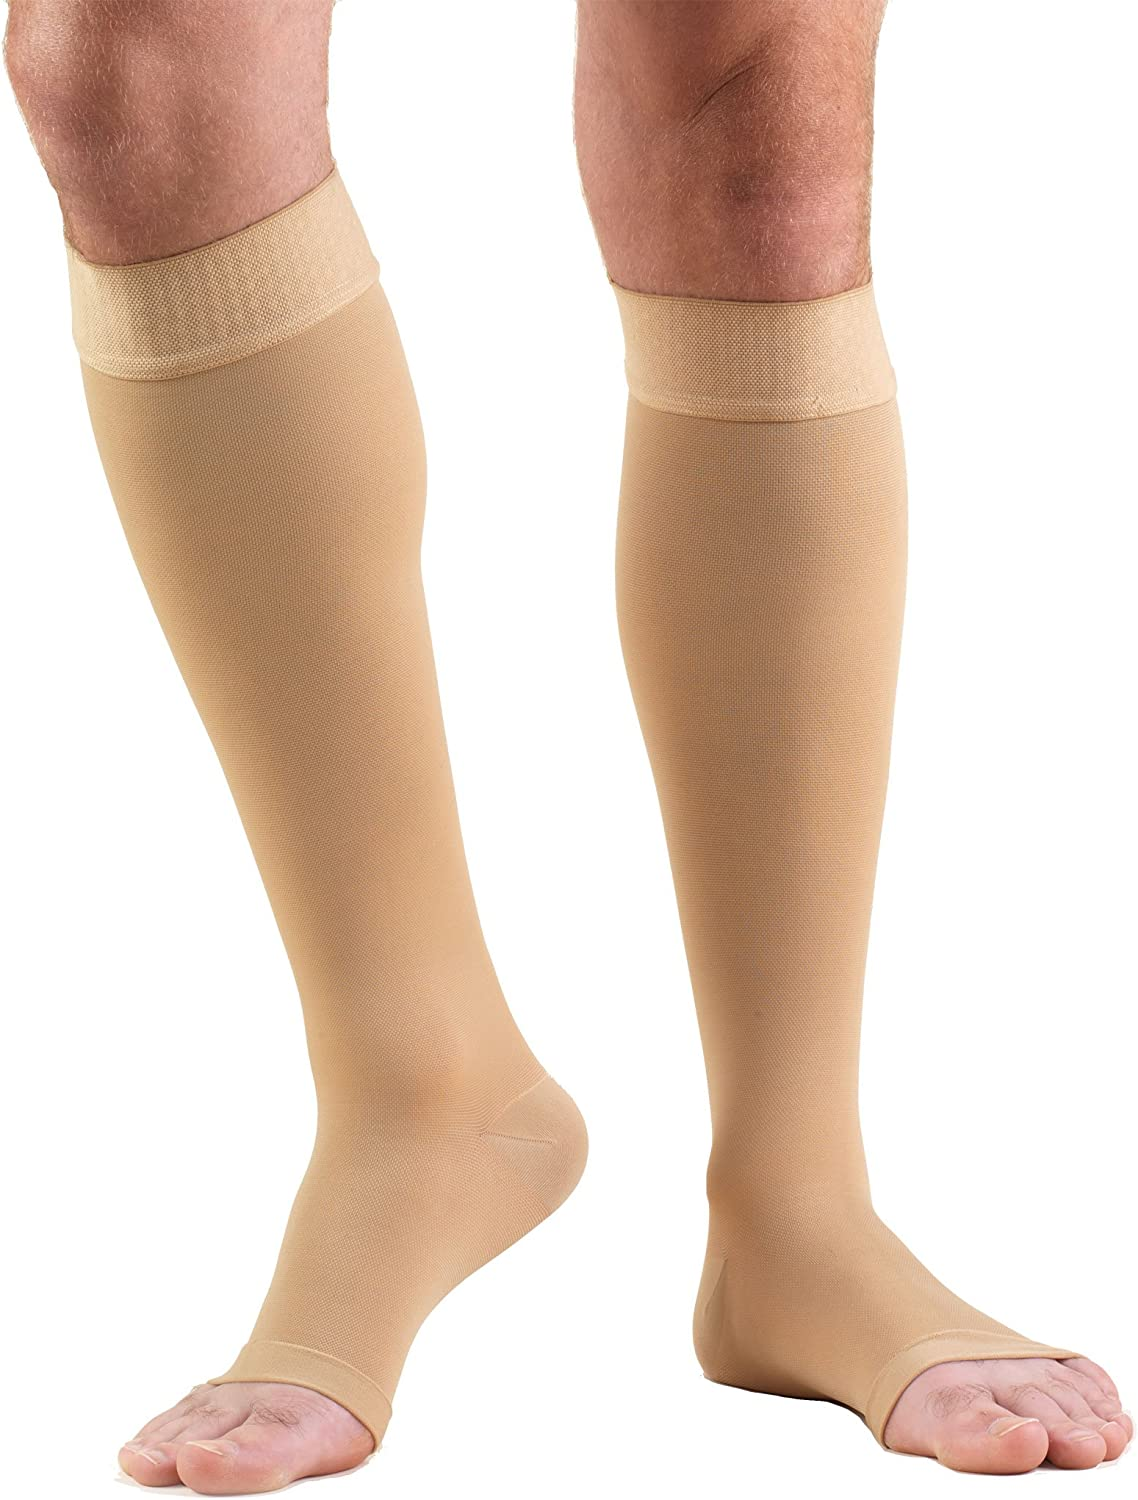 Truform 20-30 mmHg Quality inspection Compression Stockings Omaha Mall Women and for Men Knee